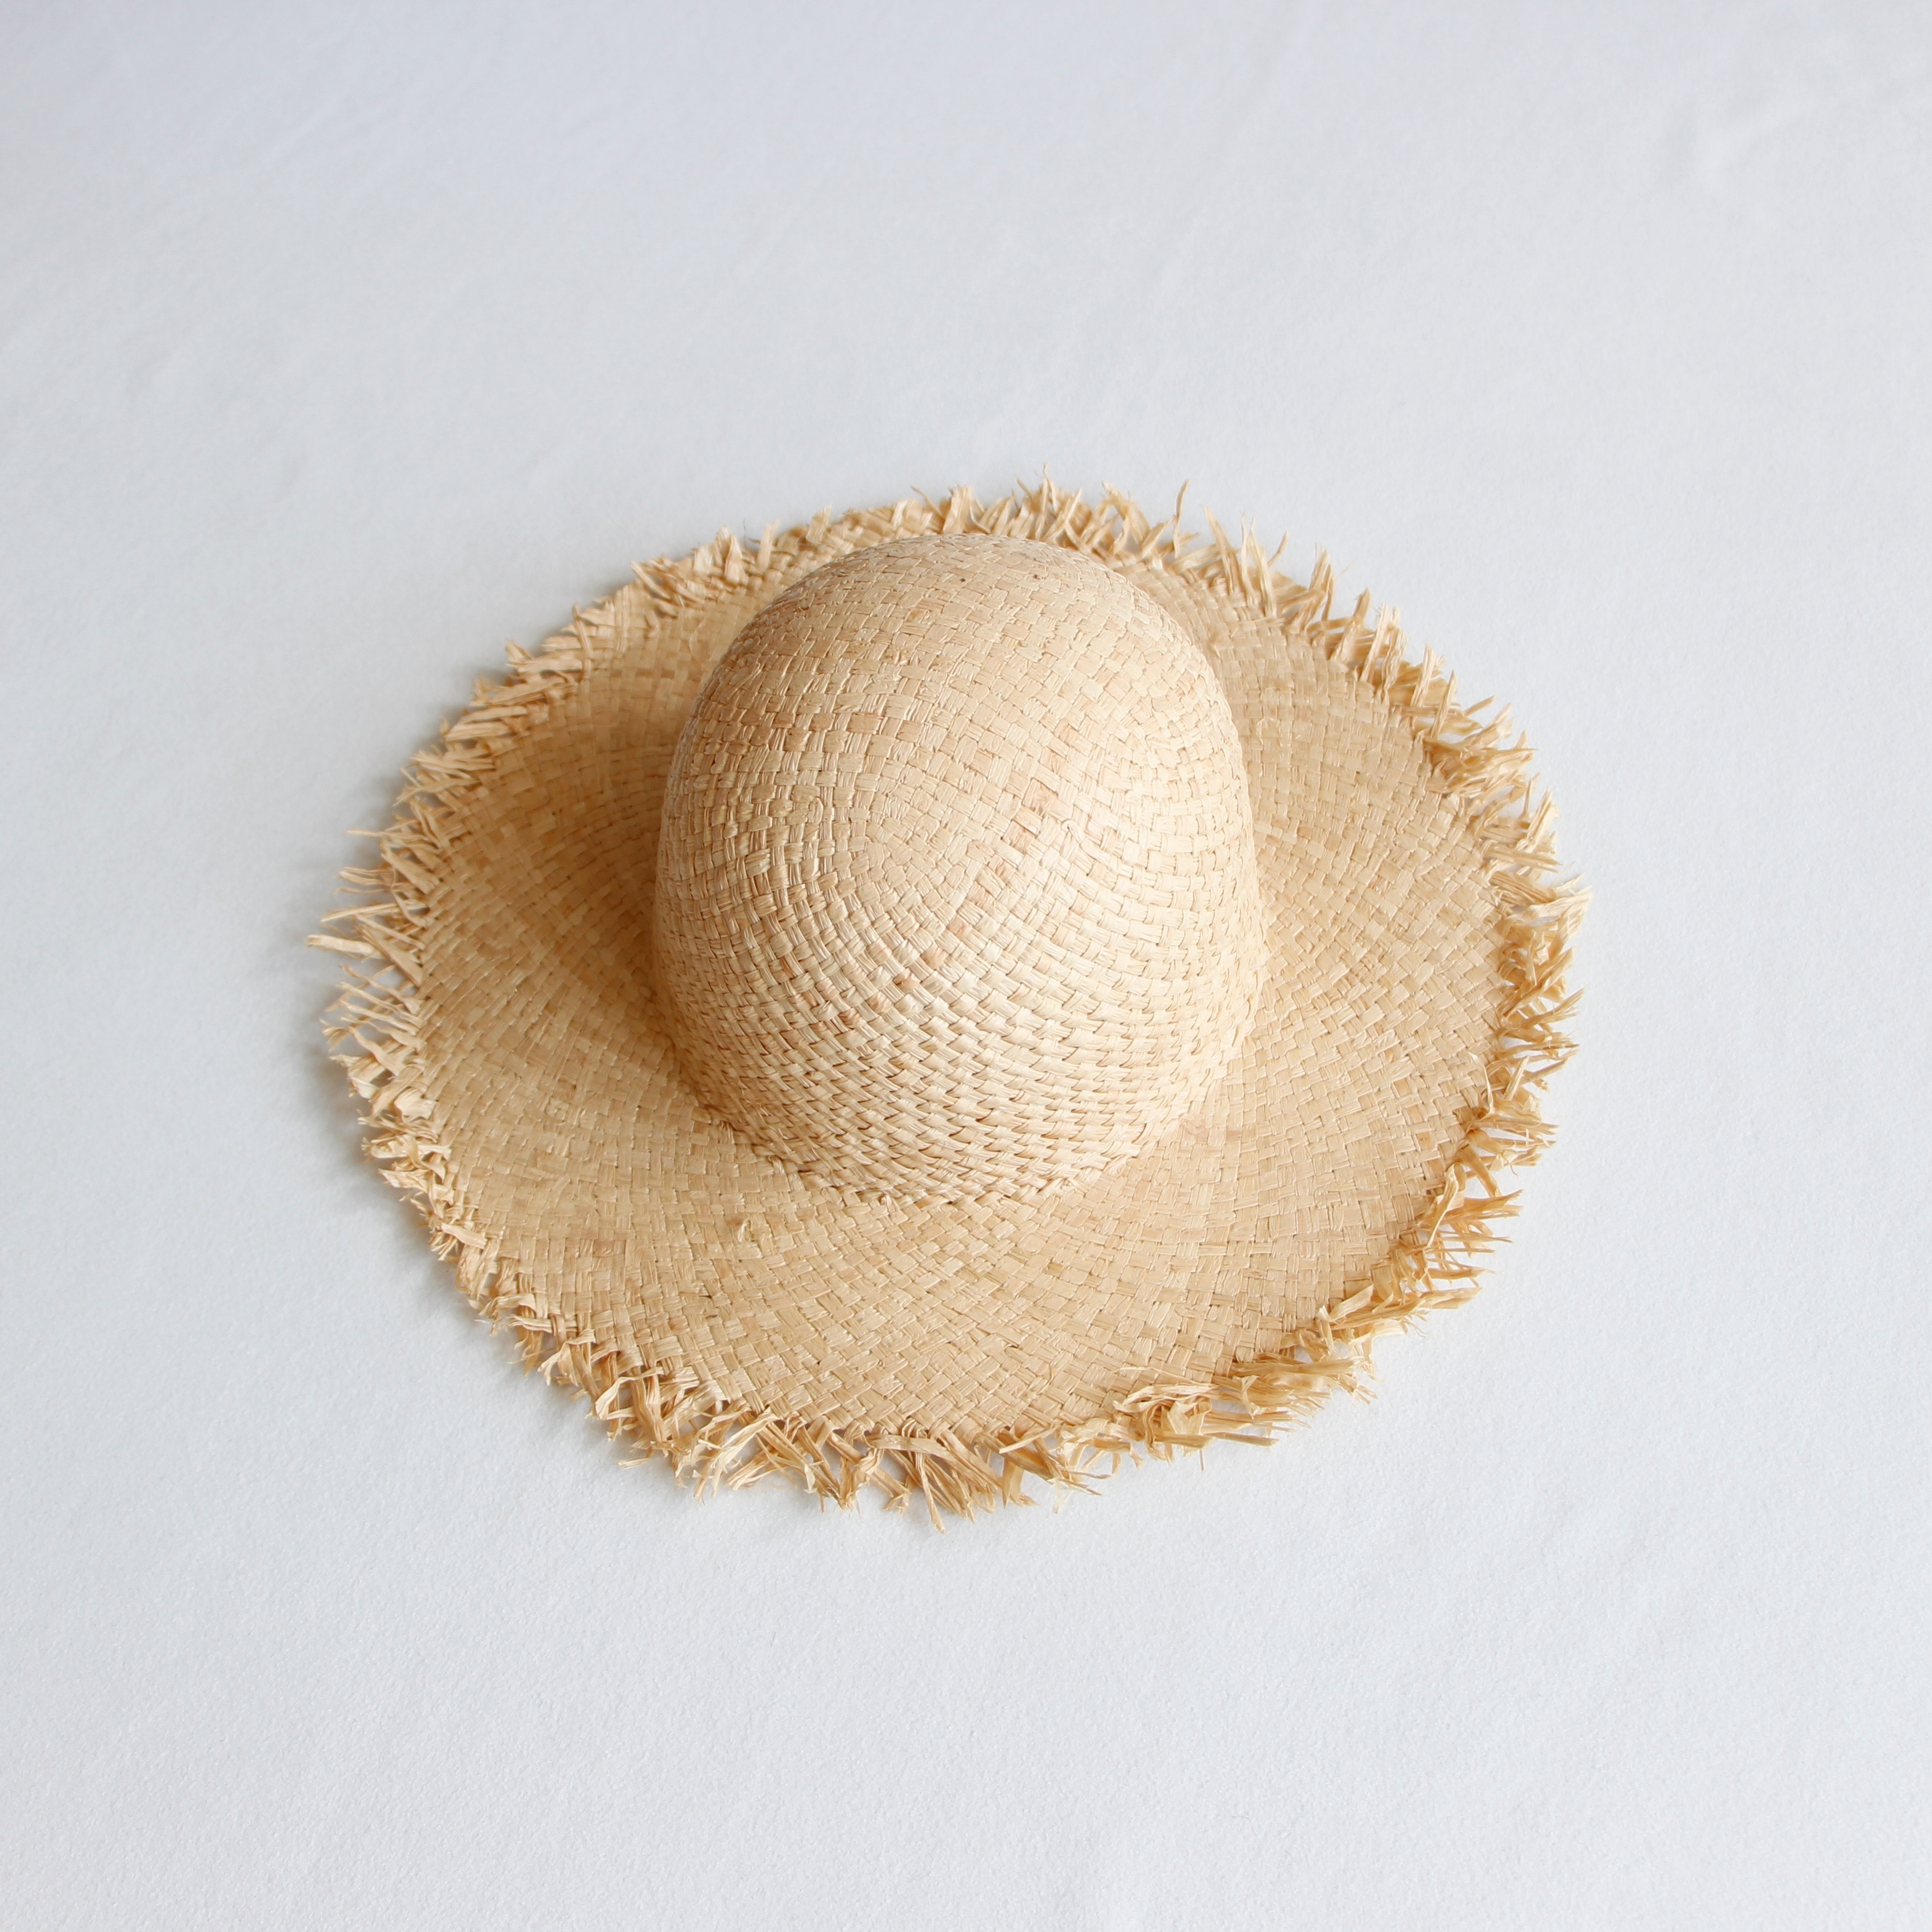 《Willys》Hewn hat / natural